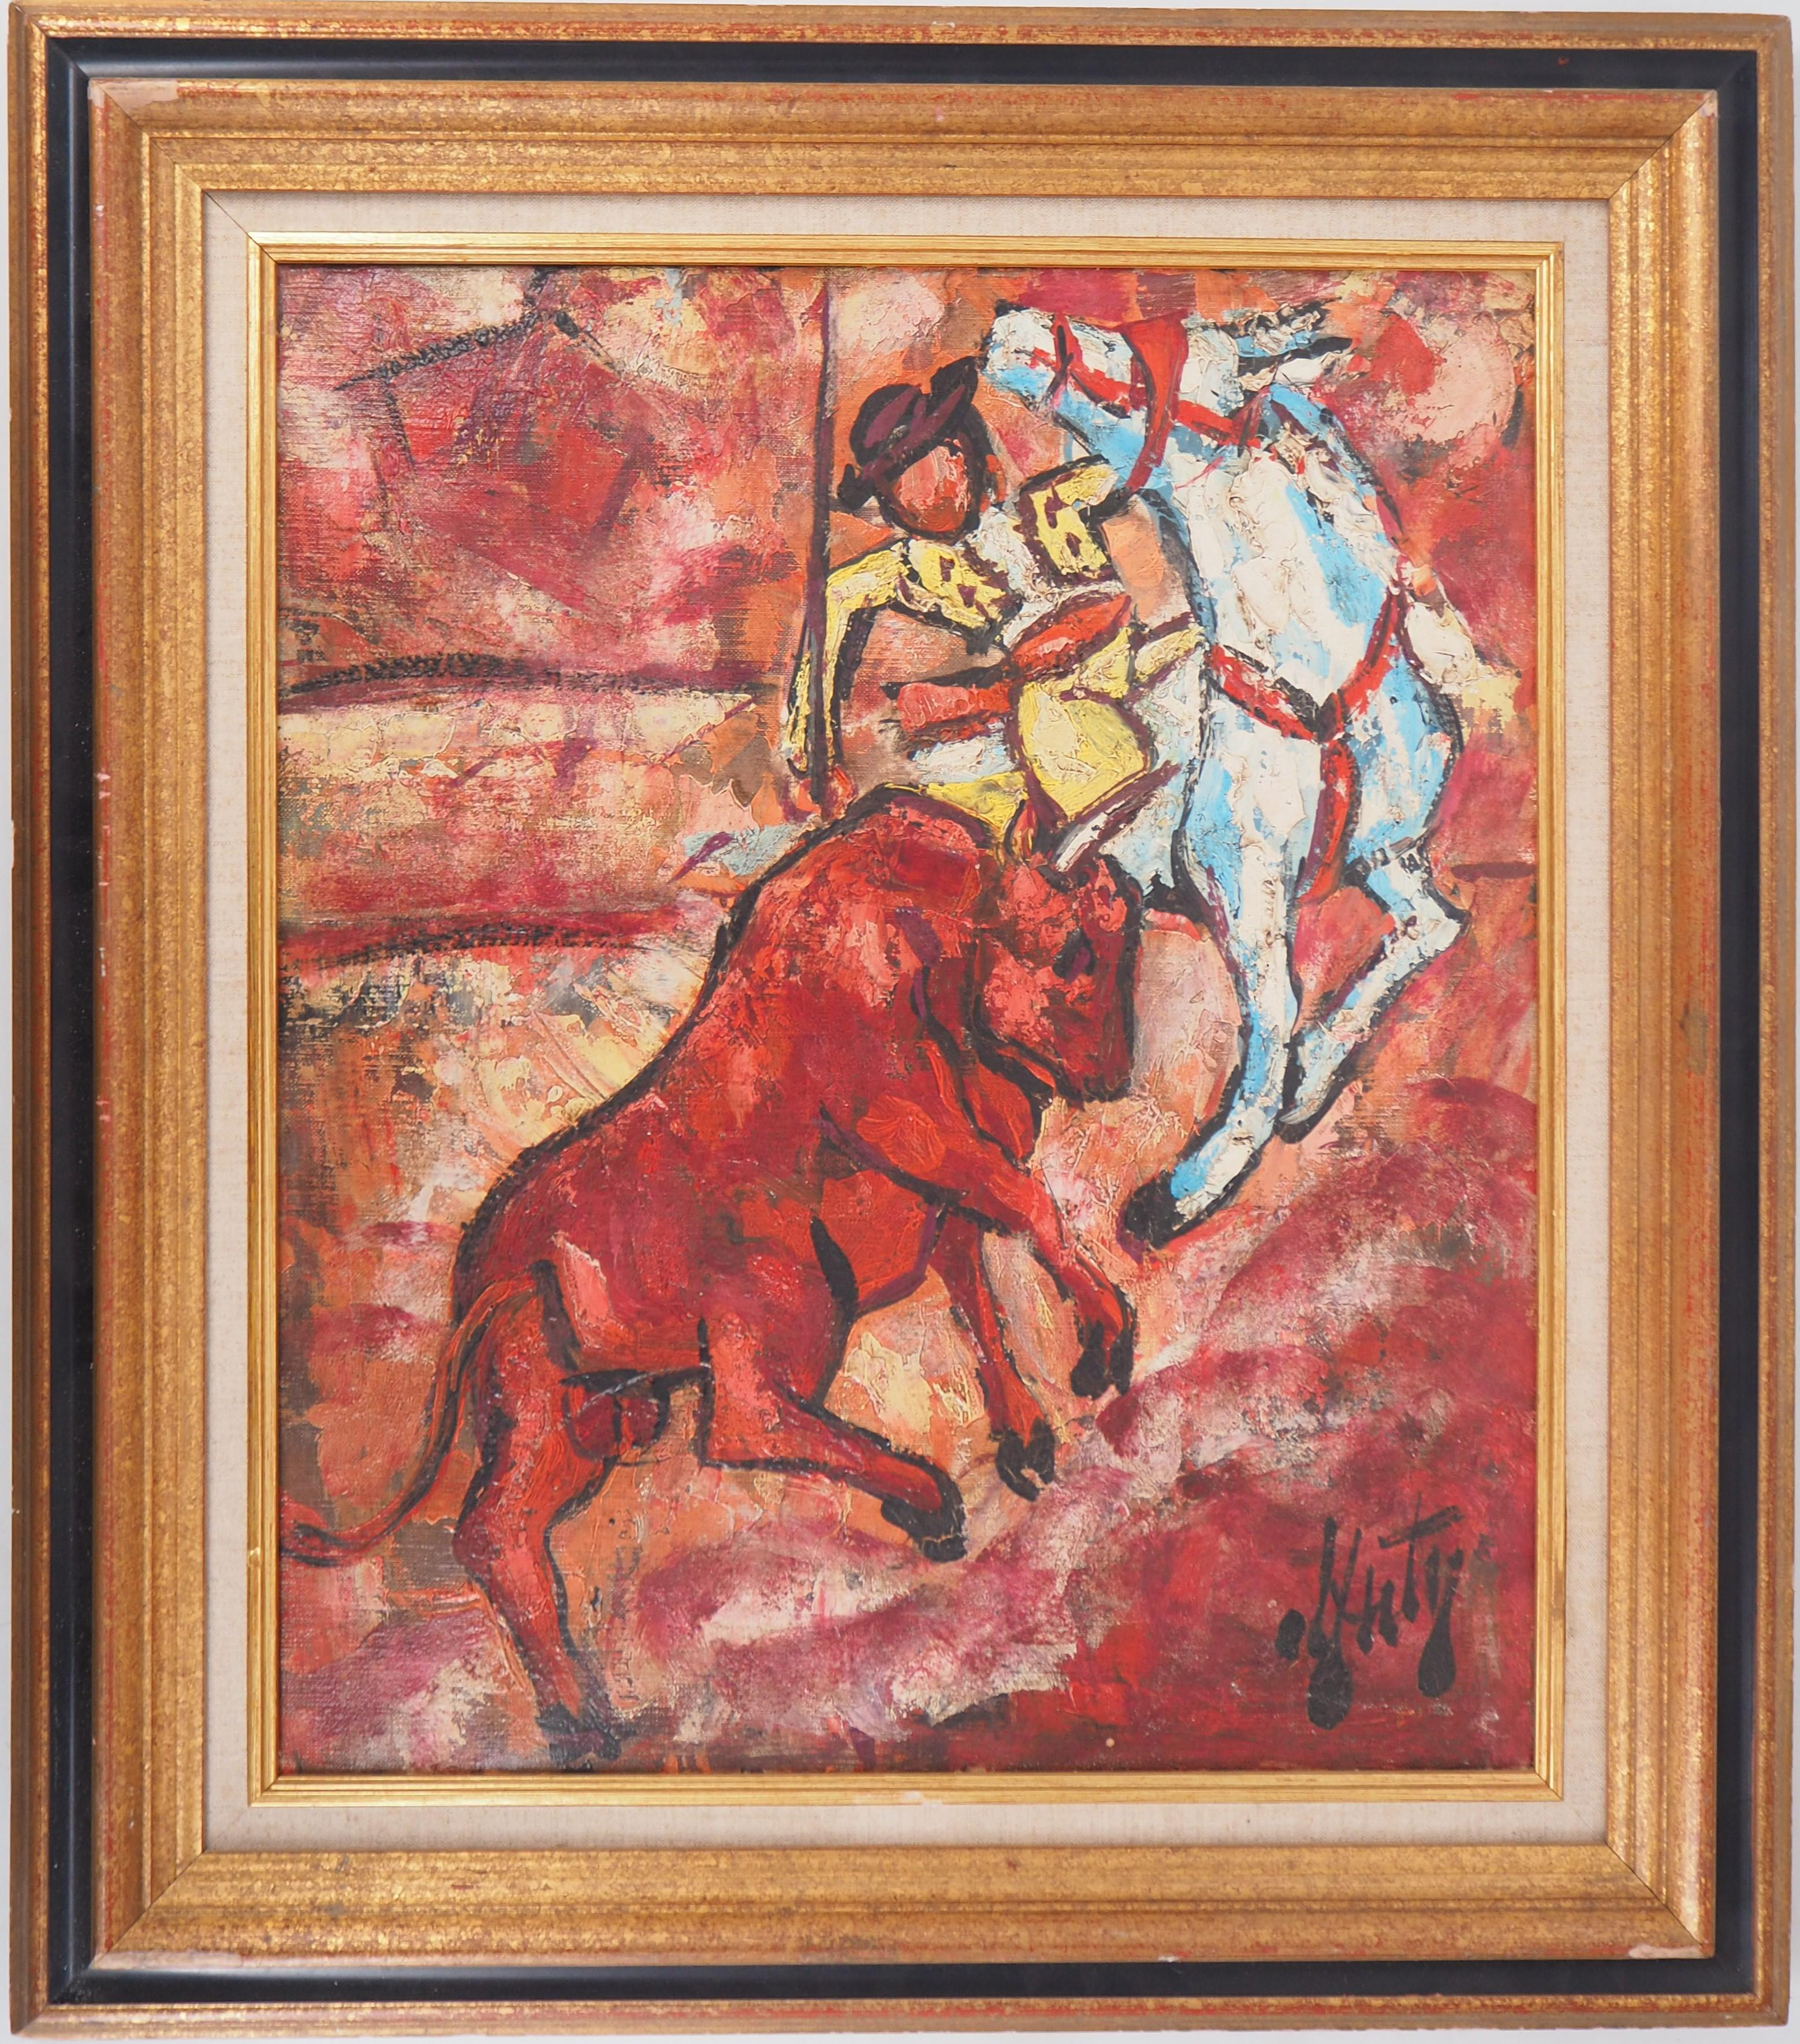 Bull and Picador - Original Oil on canvas, Handsigned